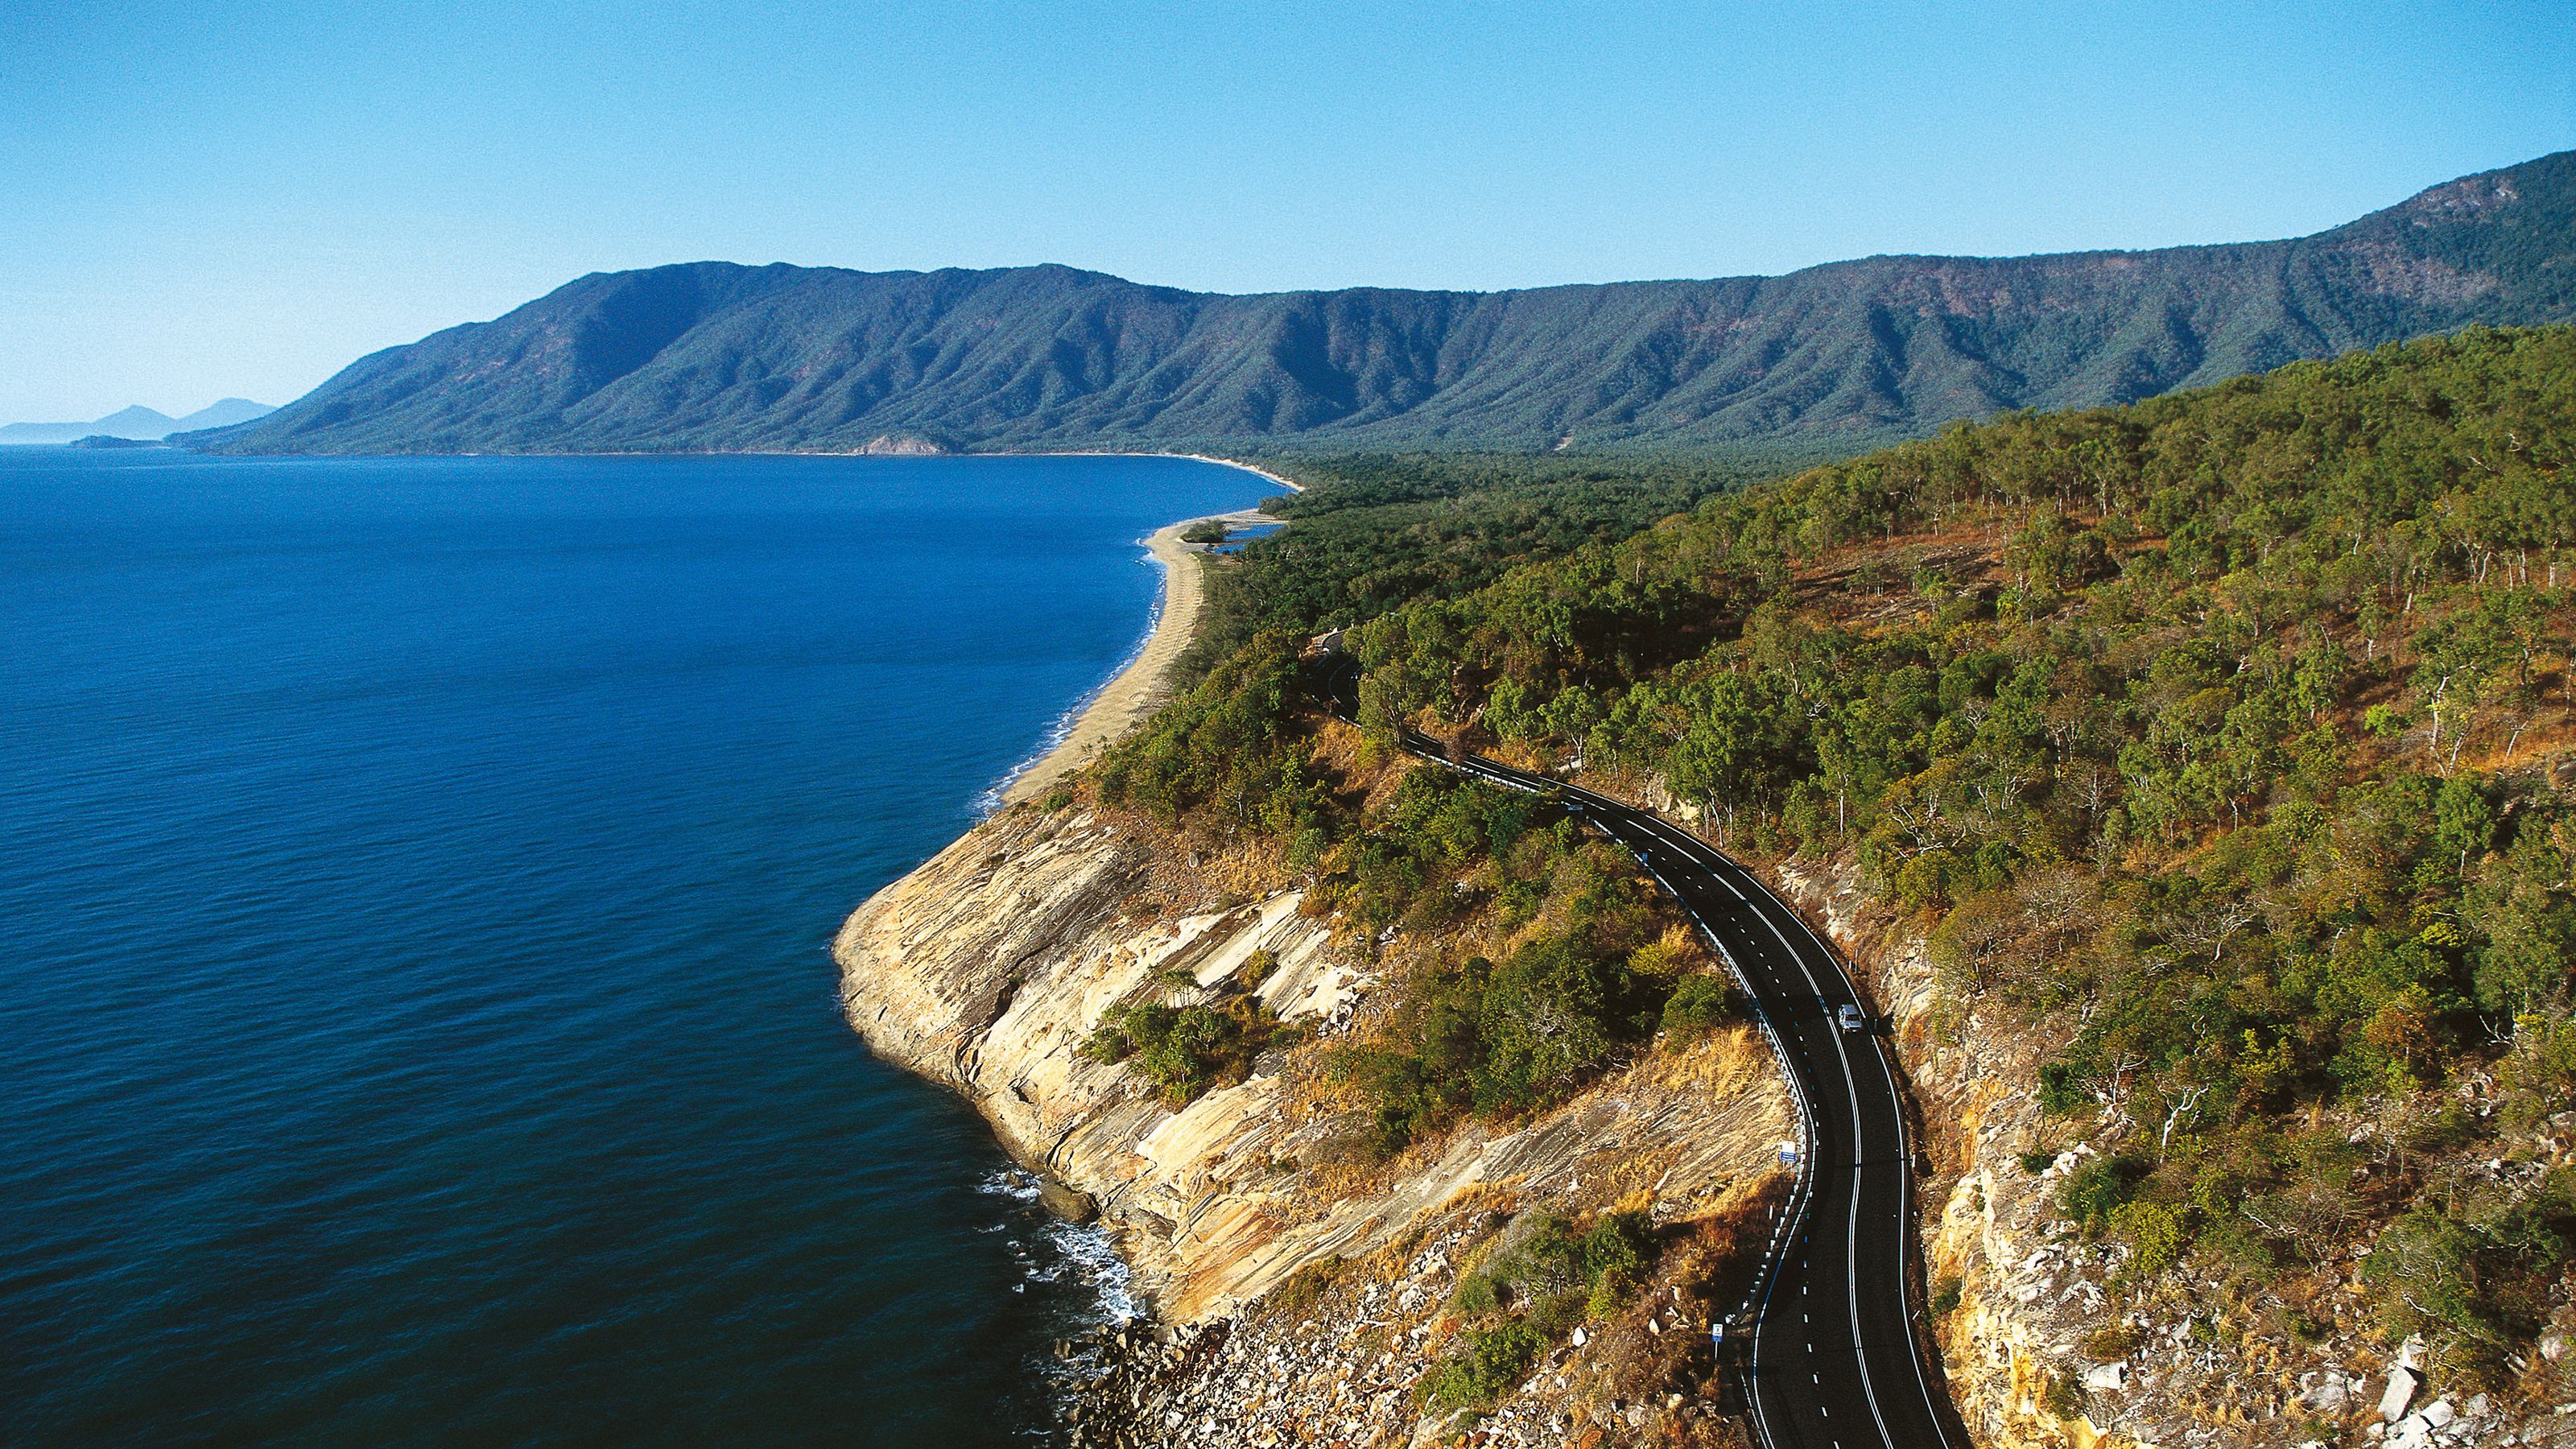 ariel view of a two lane highway hugging a rocky shoreline.